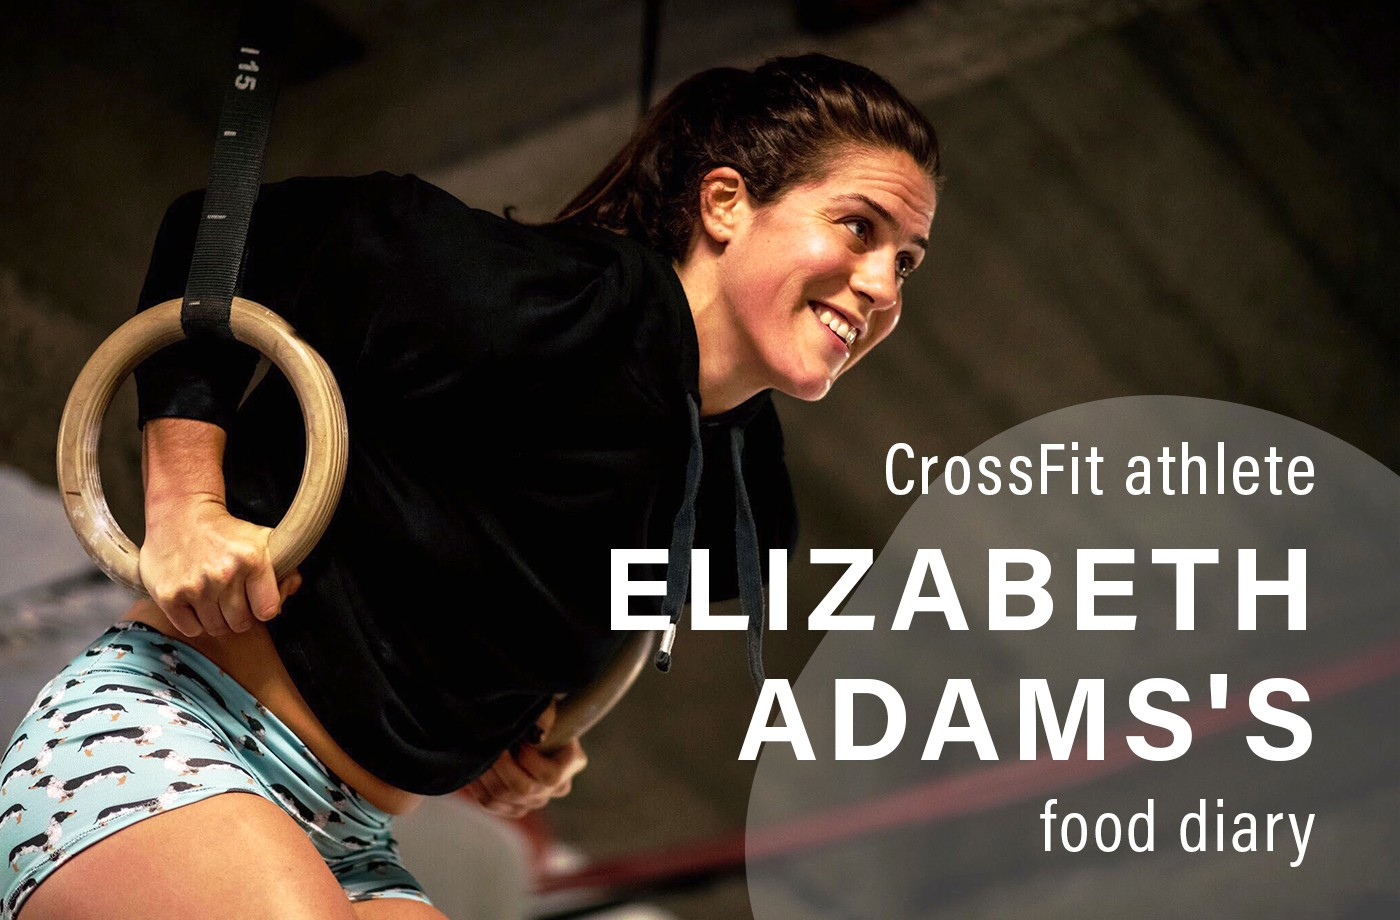 Thumbnail for We asked athlete Elizabeth Adams for her crossfit meal plan—here's what it looks like